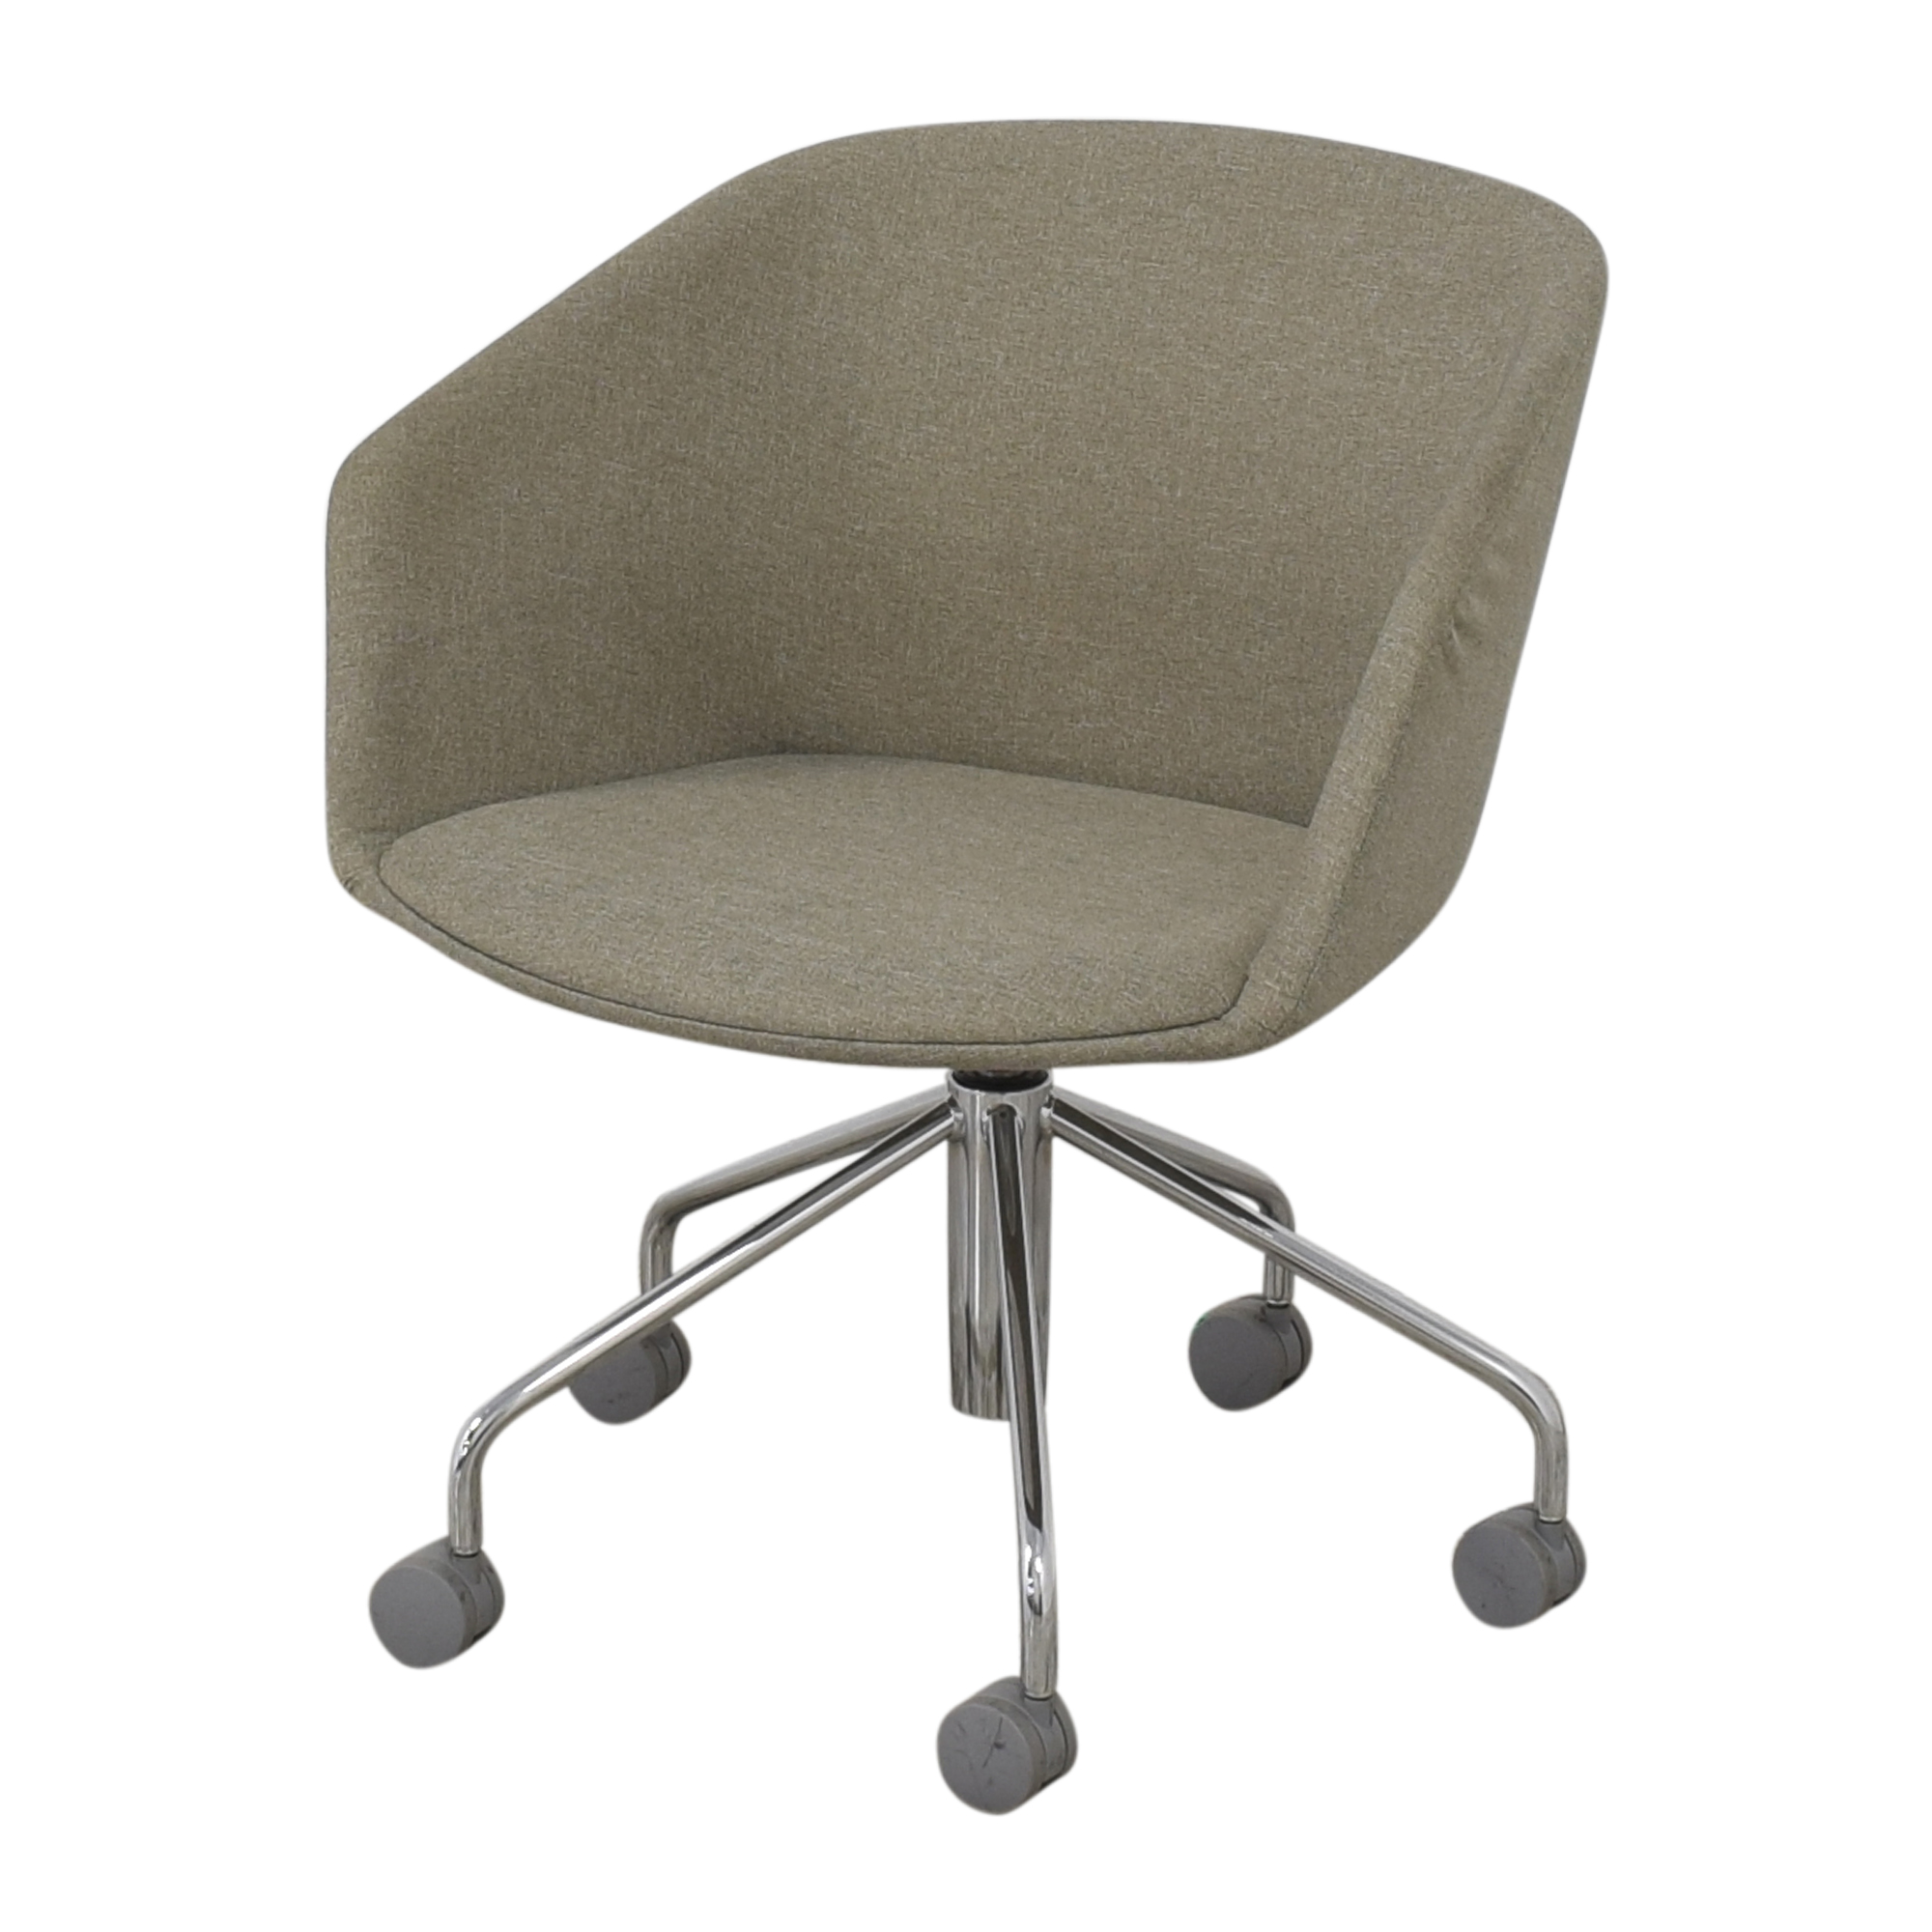 Poppin Pitch Meeting Chair / Chairs